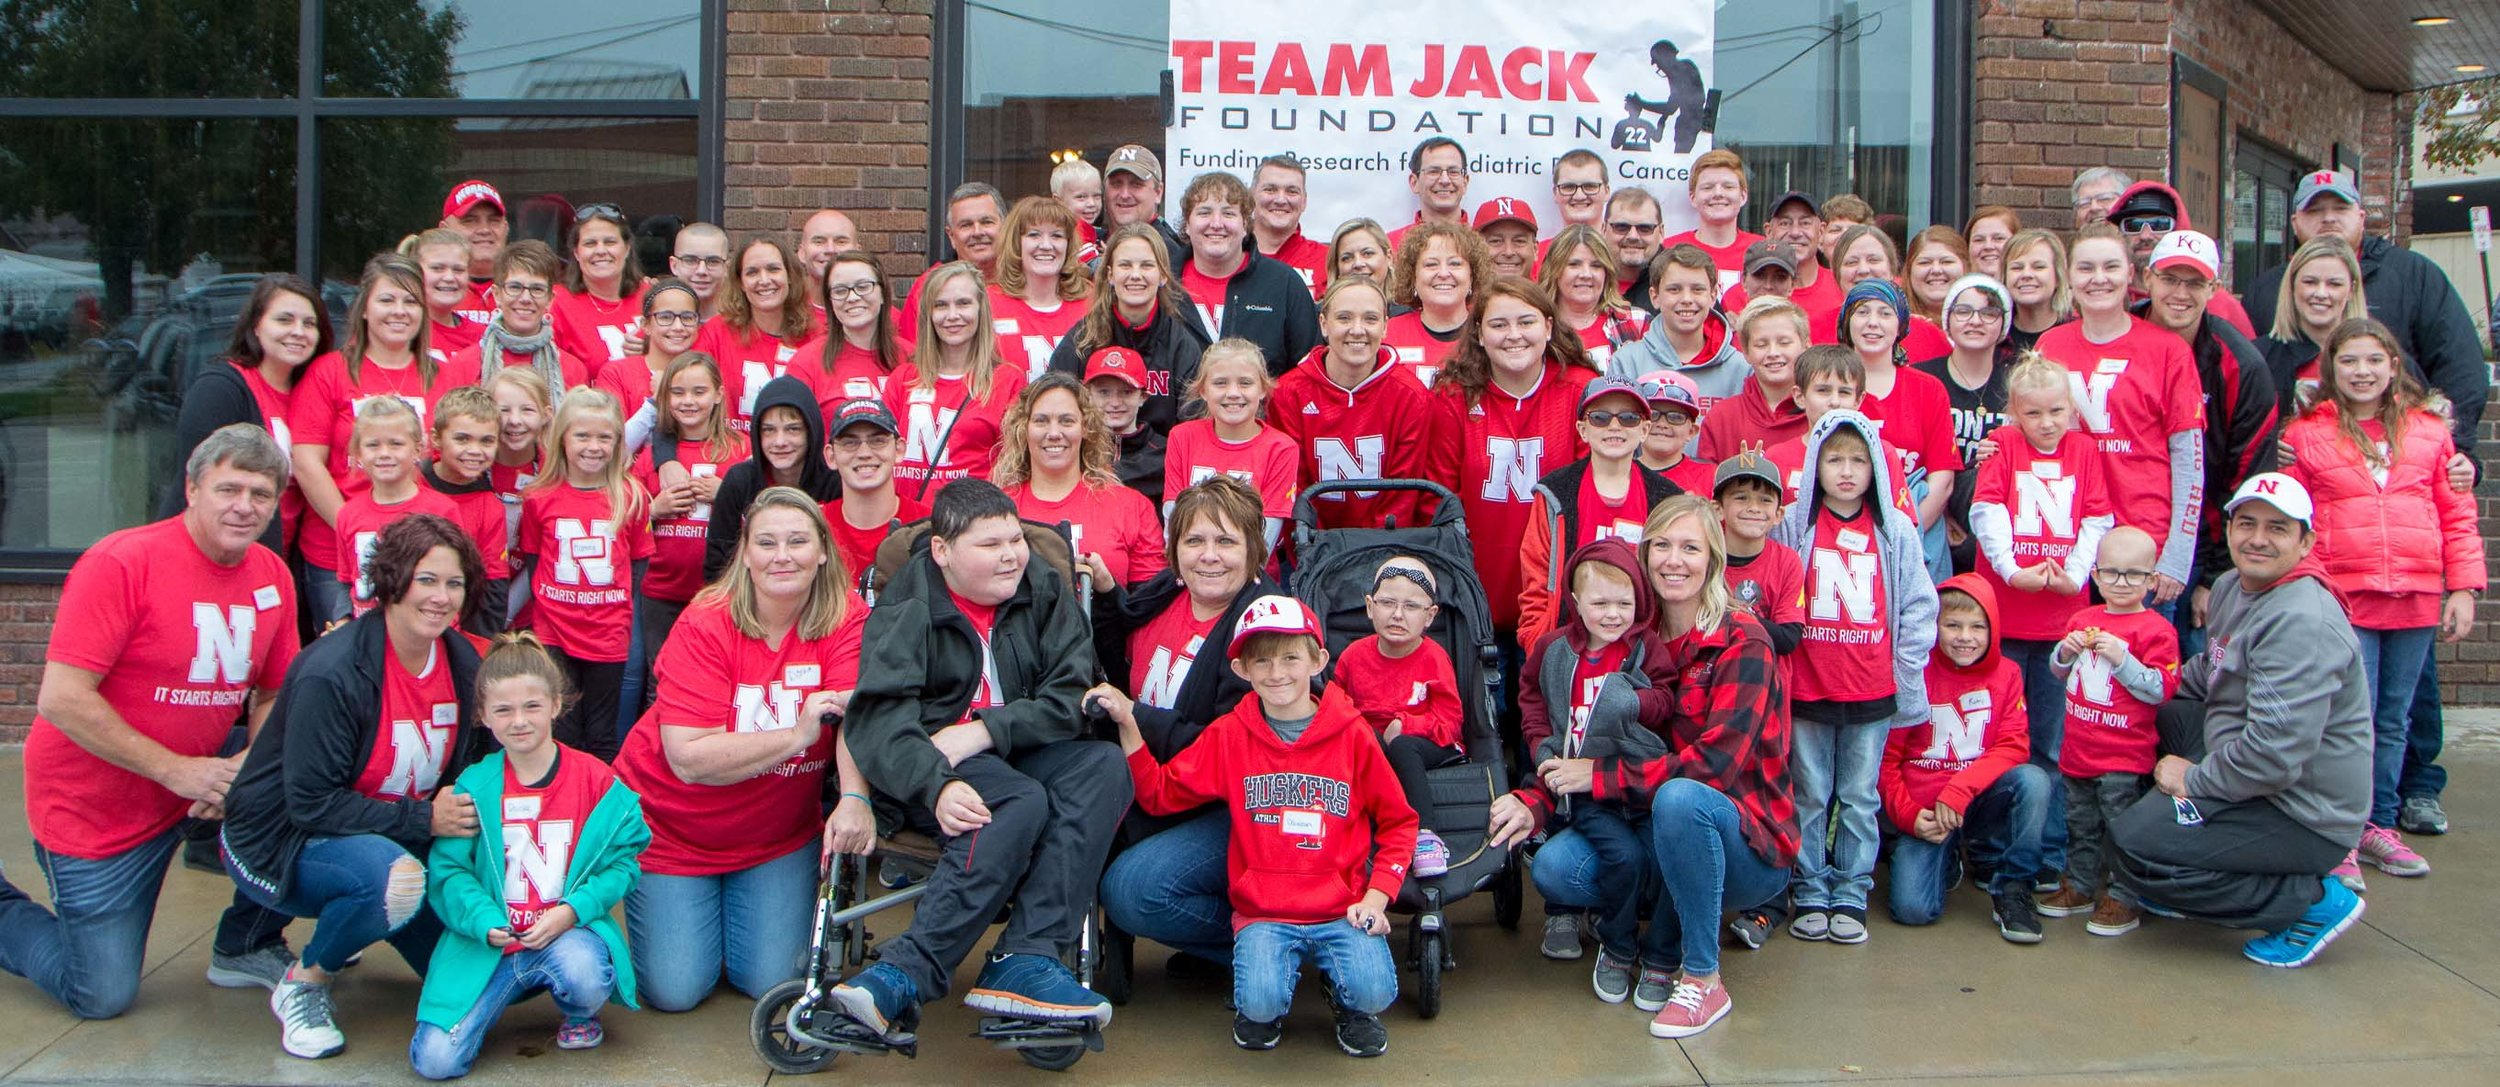 new website photo Team Jack Foundation.jpg